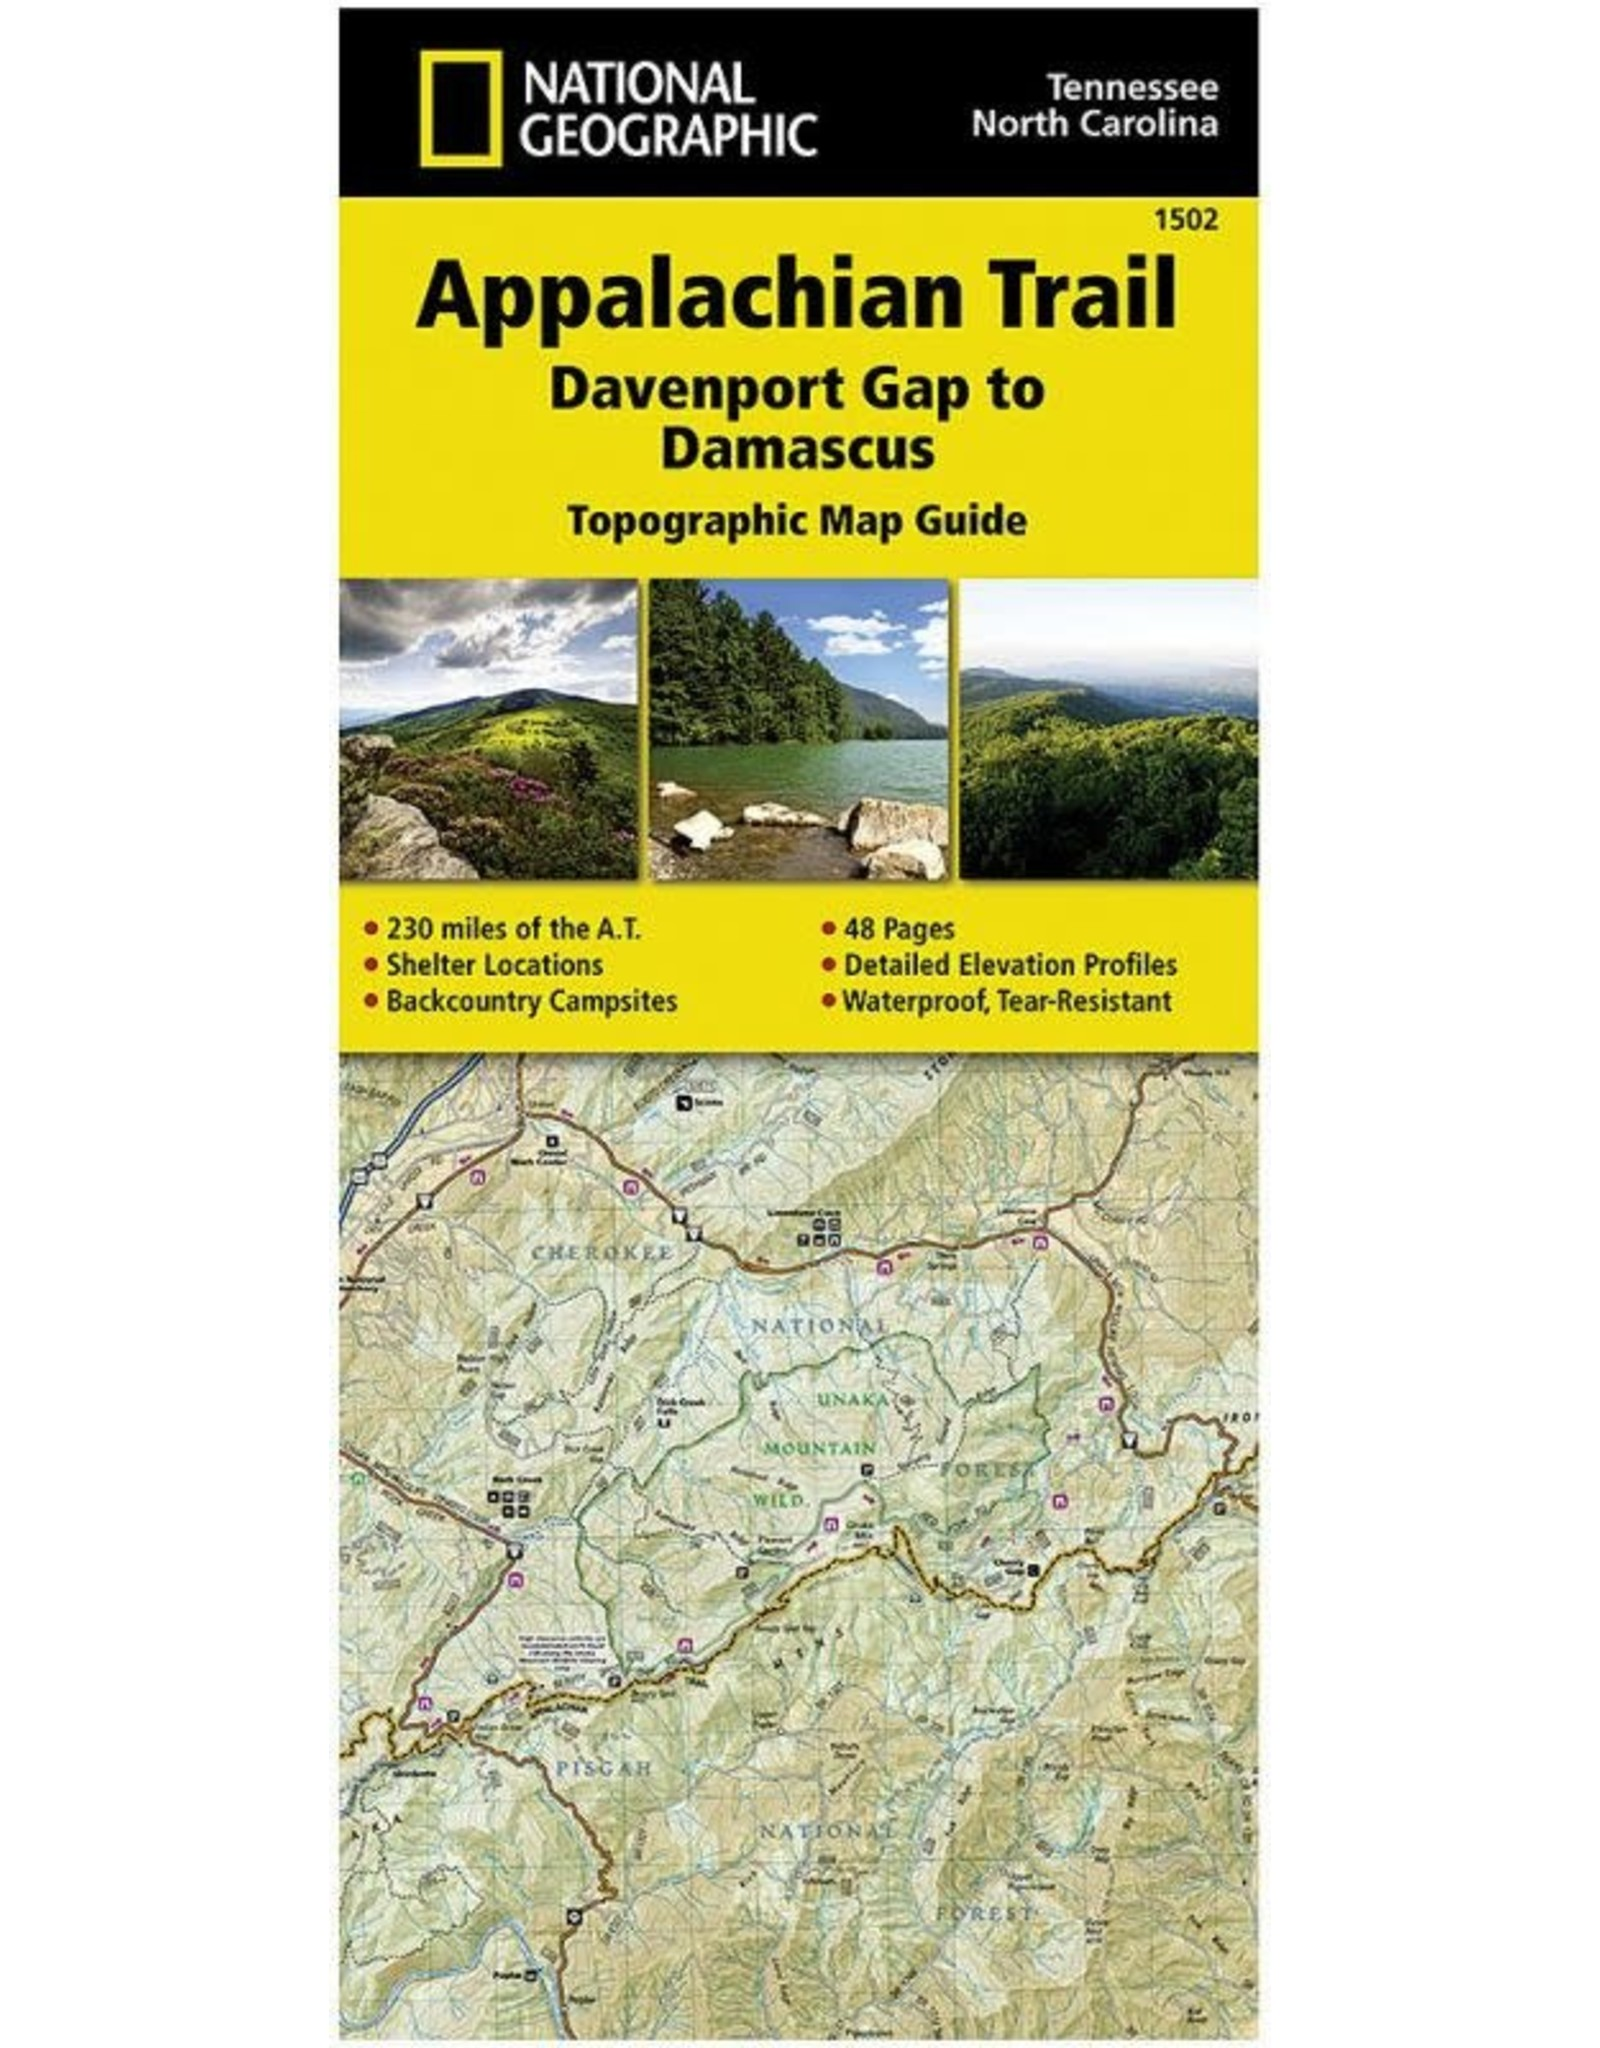 NATIONAL GEOGRAPHIC APP TRAIL- DAMASCUS NC/TN 1502